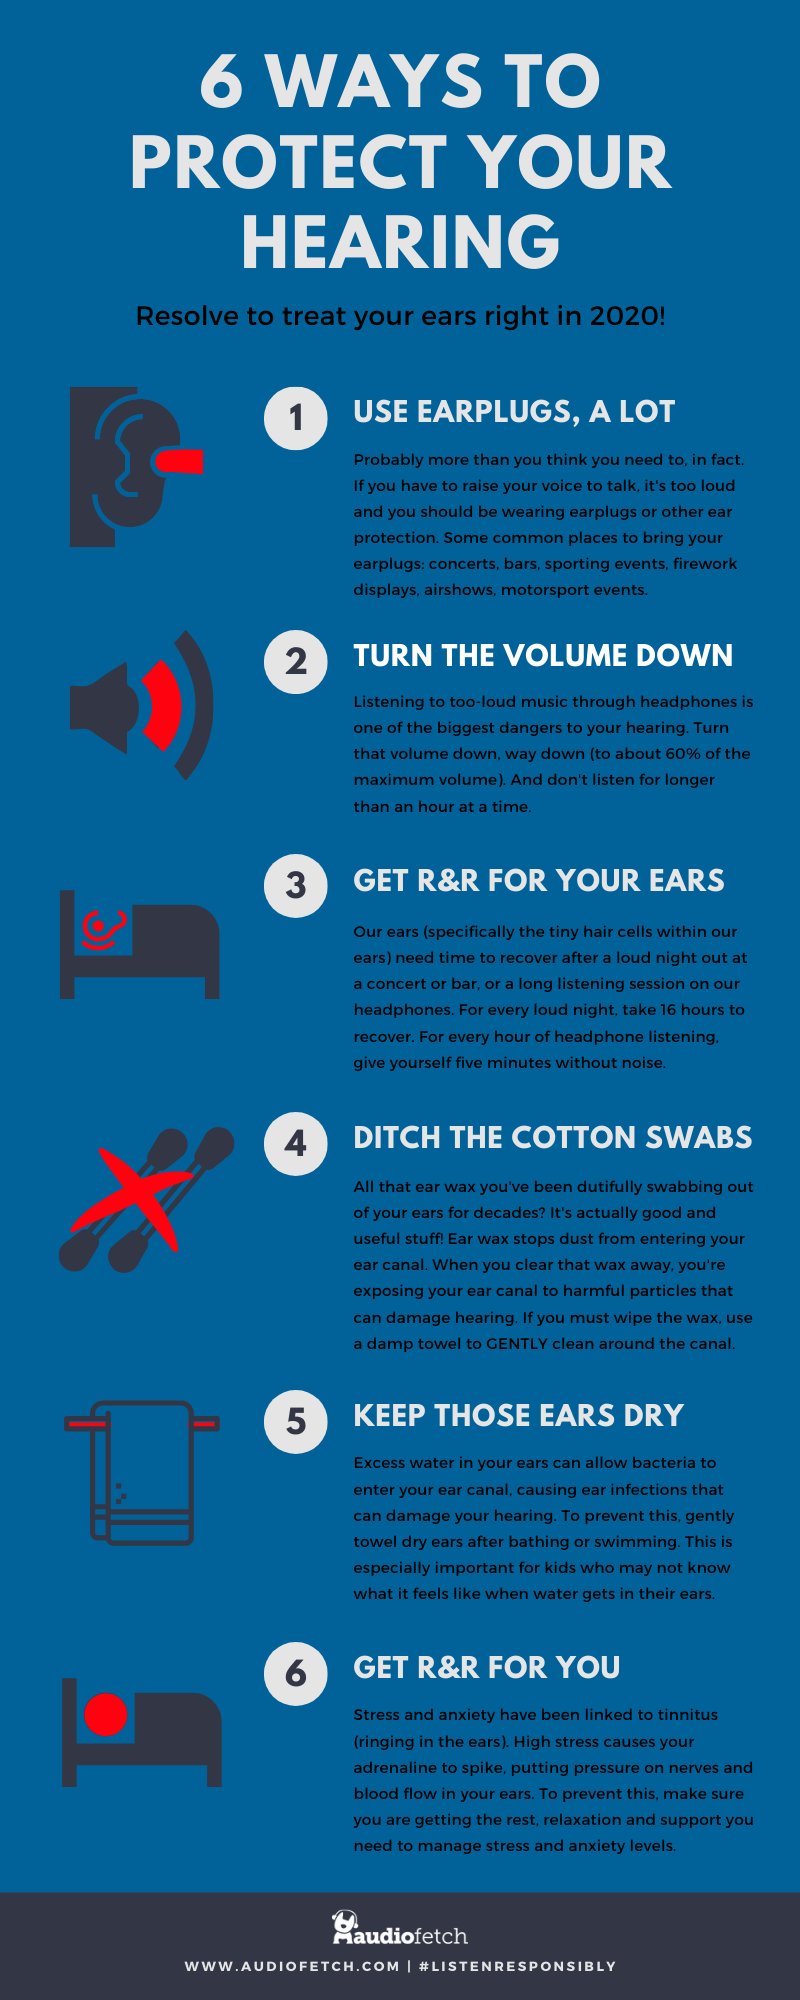 6 Ways to Protect your Ears Infographic